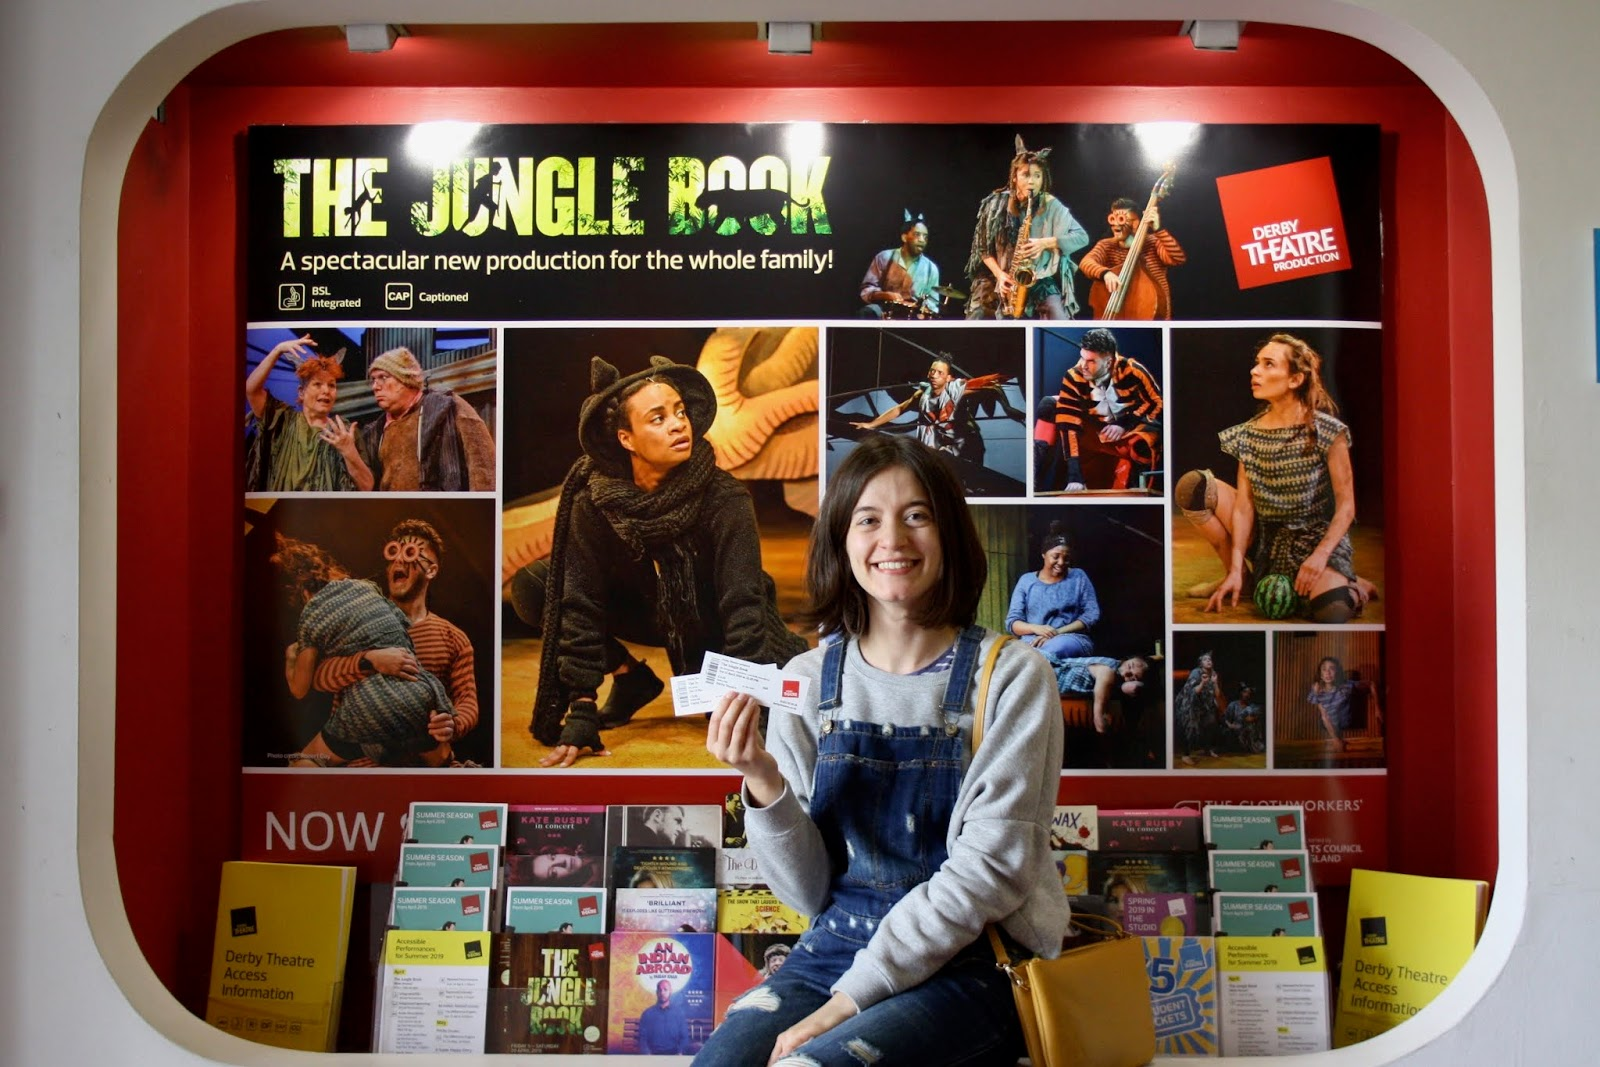 Abbey holding her tickets to The Jungle Book, seated before a poster advertising the performance at Derby Theatre